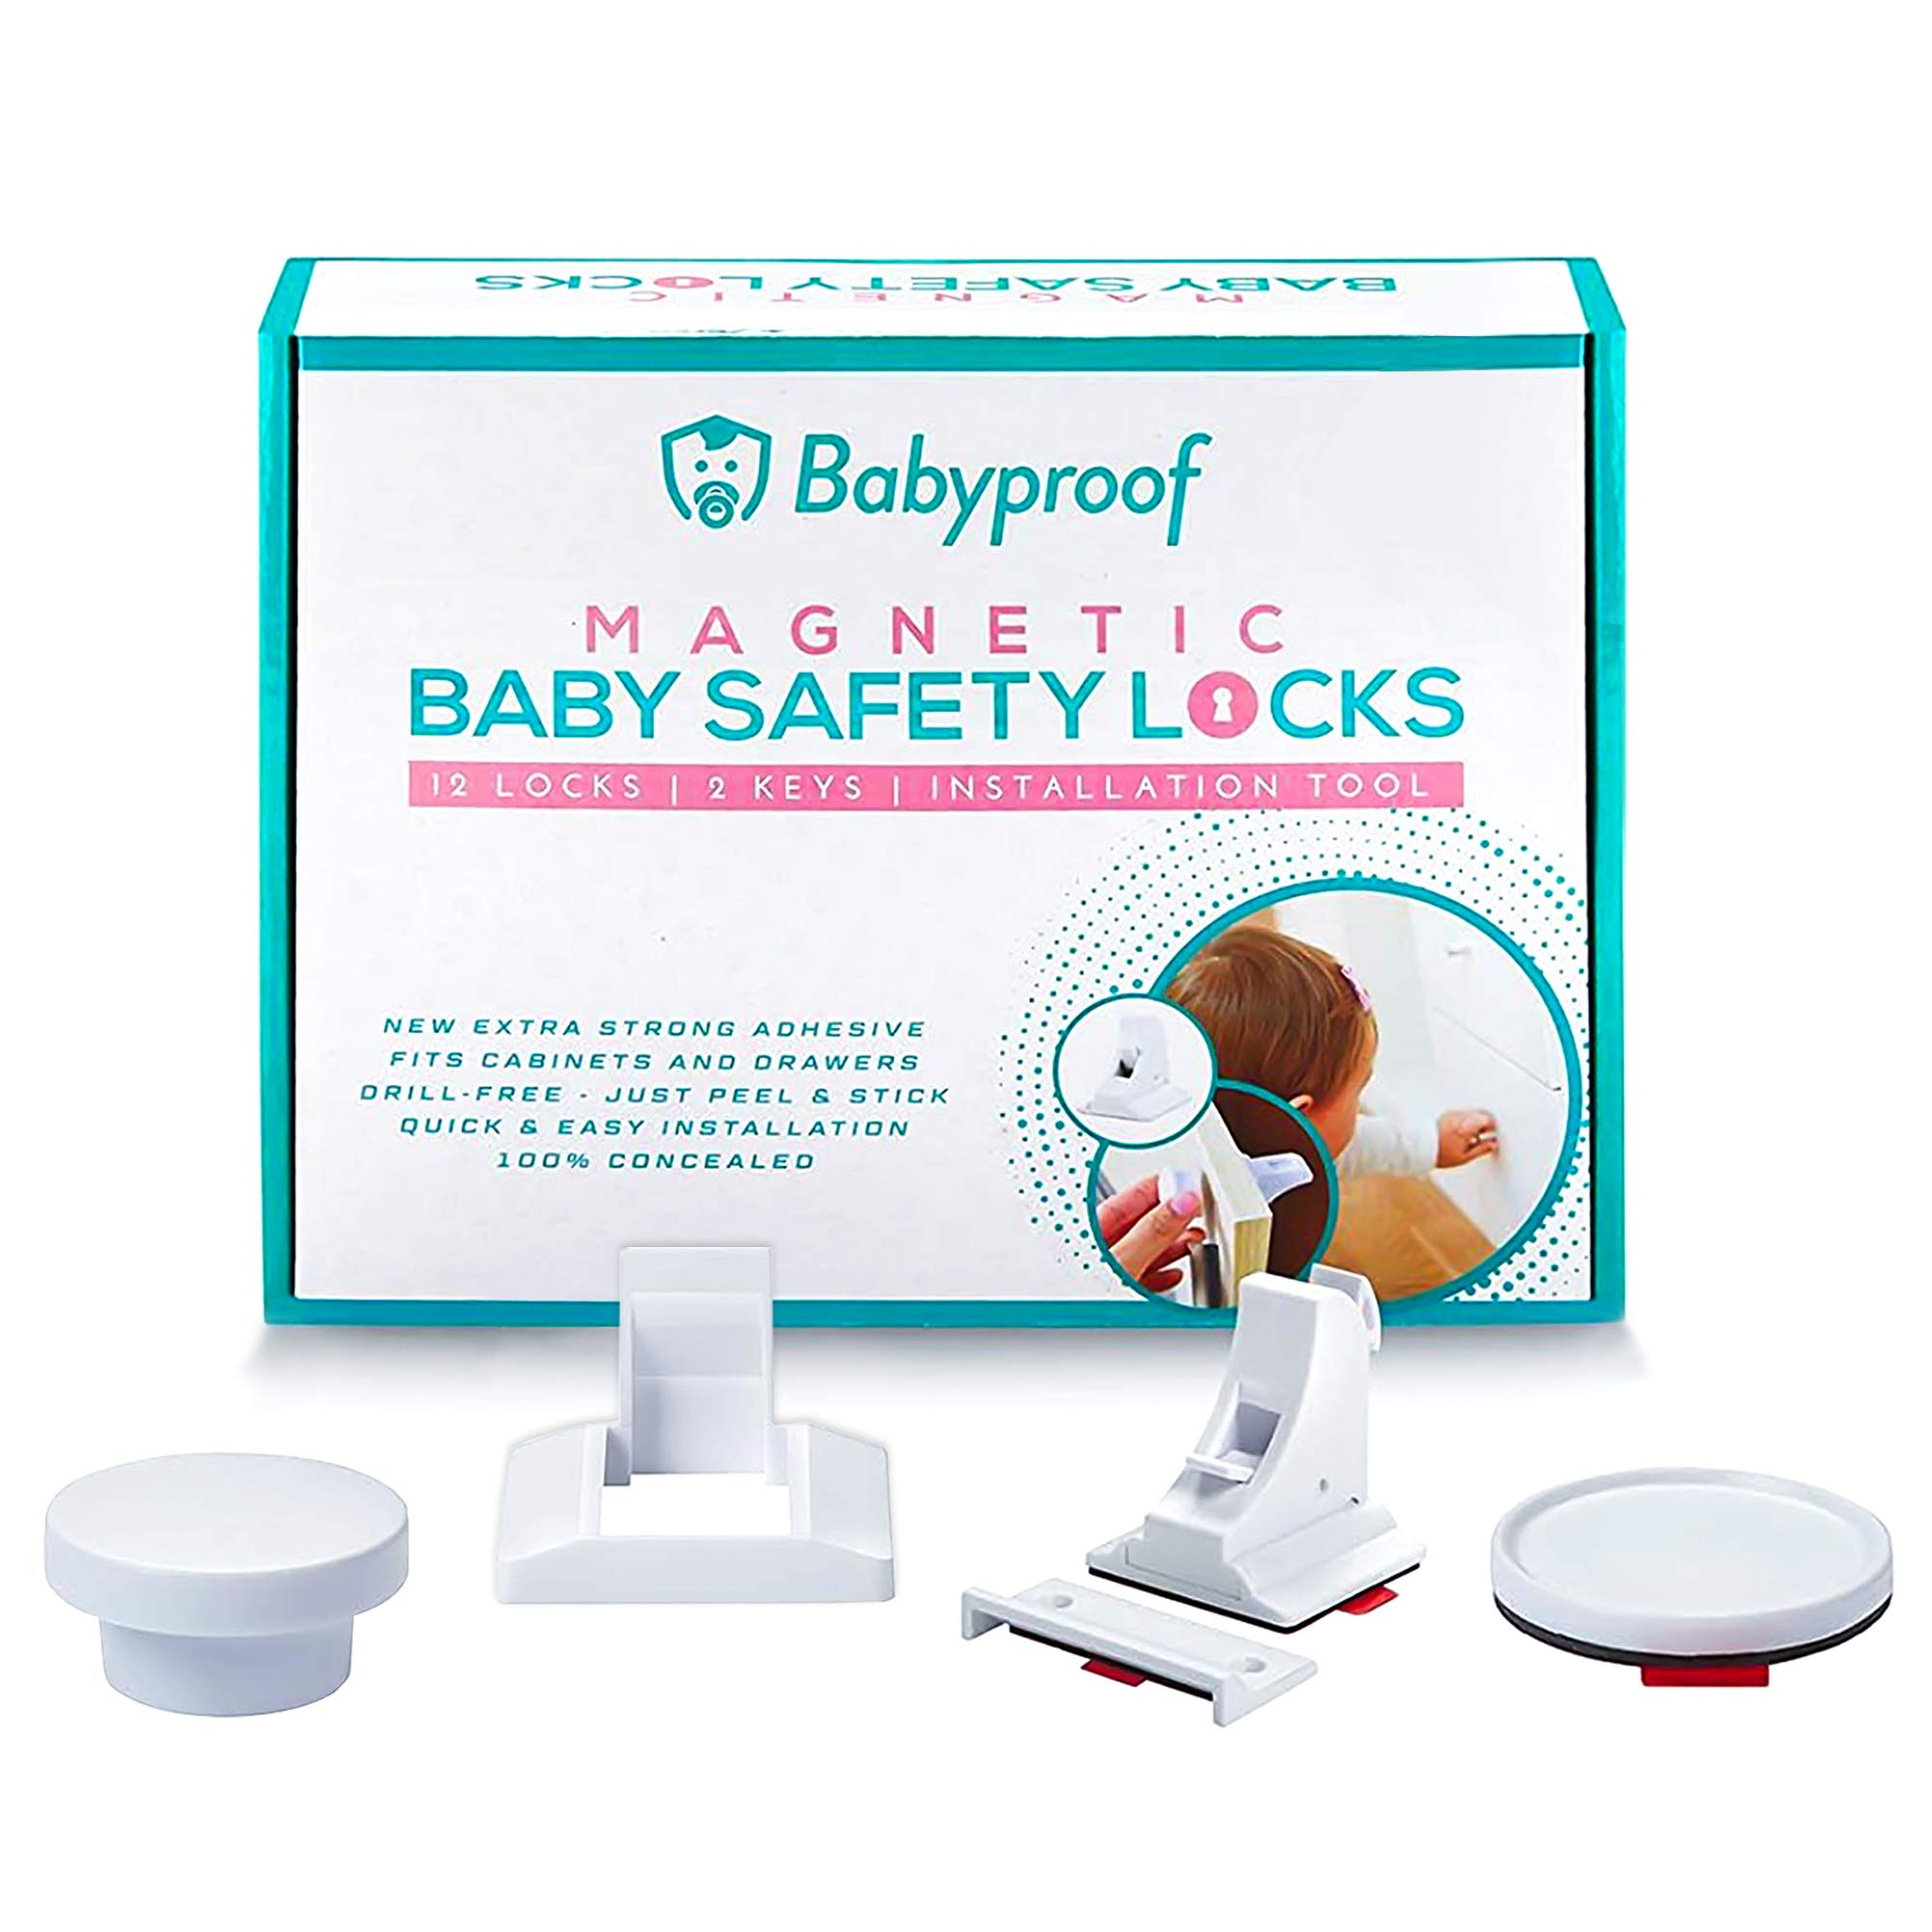 Babyproof Magnetic Cabinet Locks Child safety - Extra Strong Hold, Drill Free - Easy and Fast Installation - Baby Locks For Cabinets Doors and Drawers - Magnetic Lock On/Off Switch by BabyProof